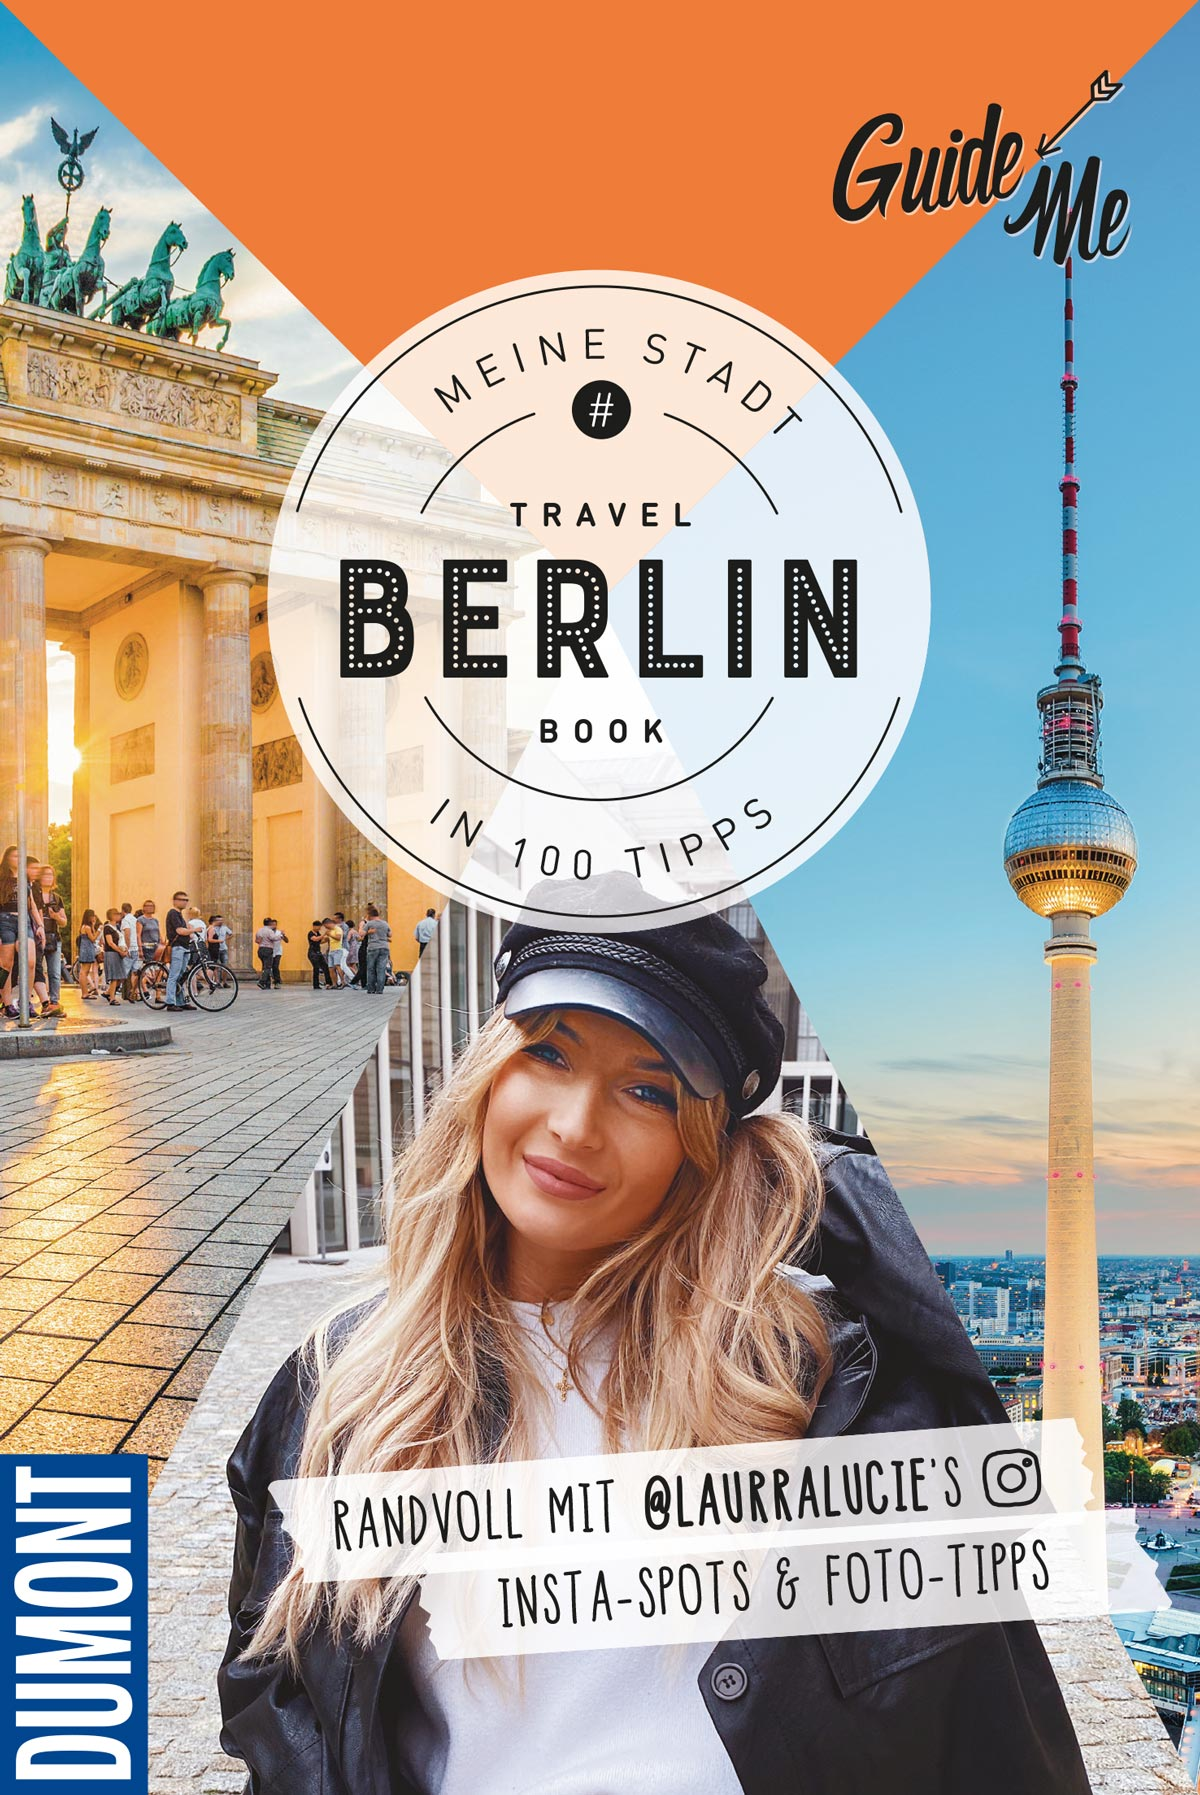 GuideMe TravelBook «Berlin»